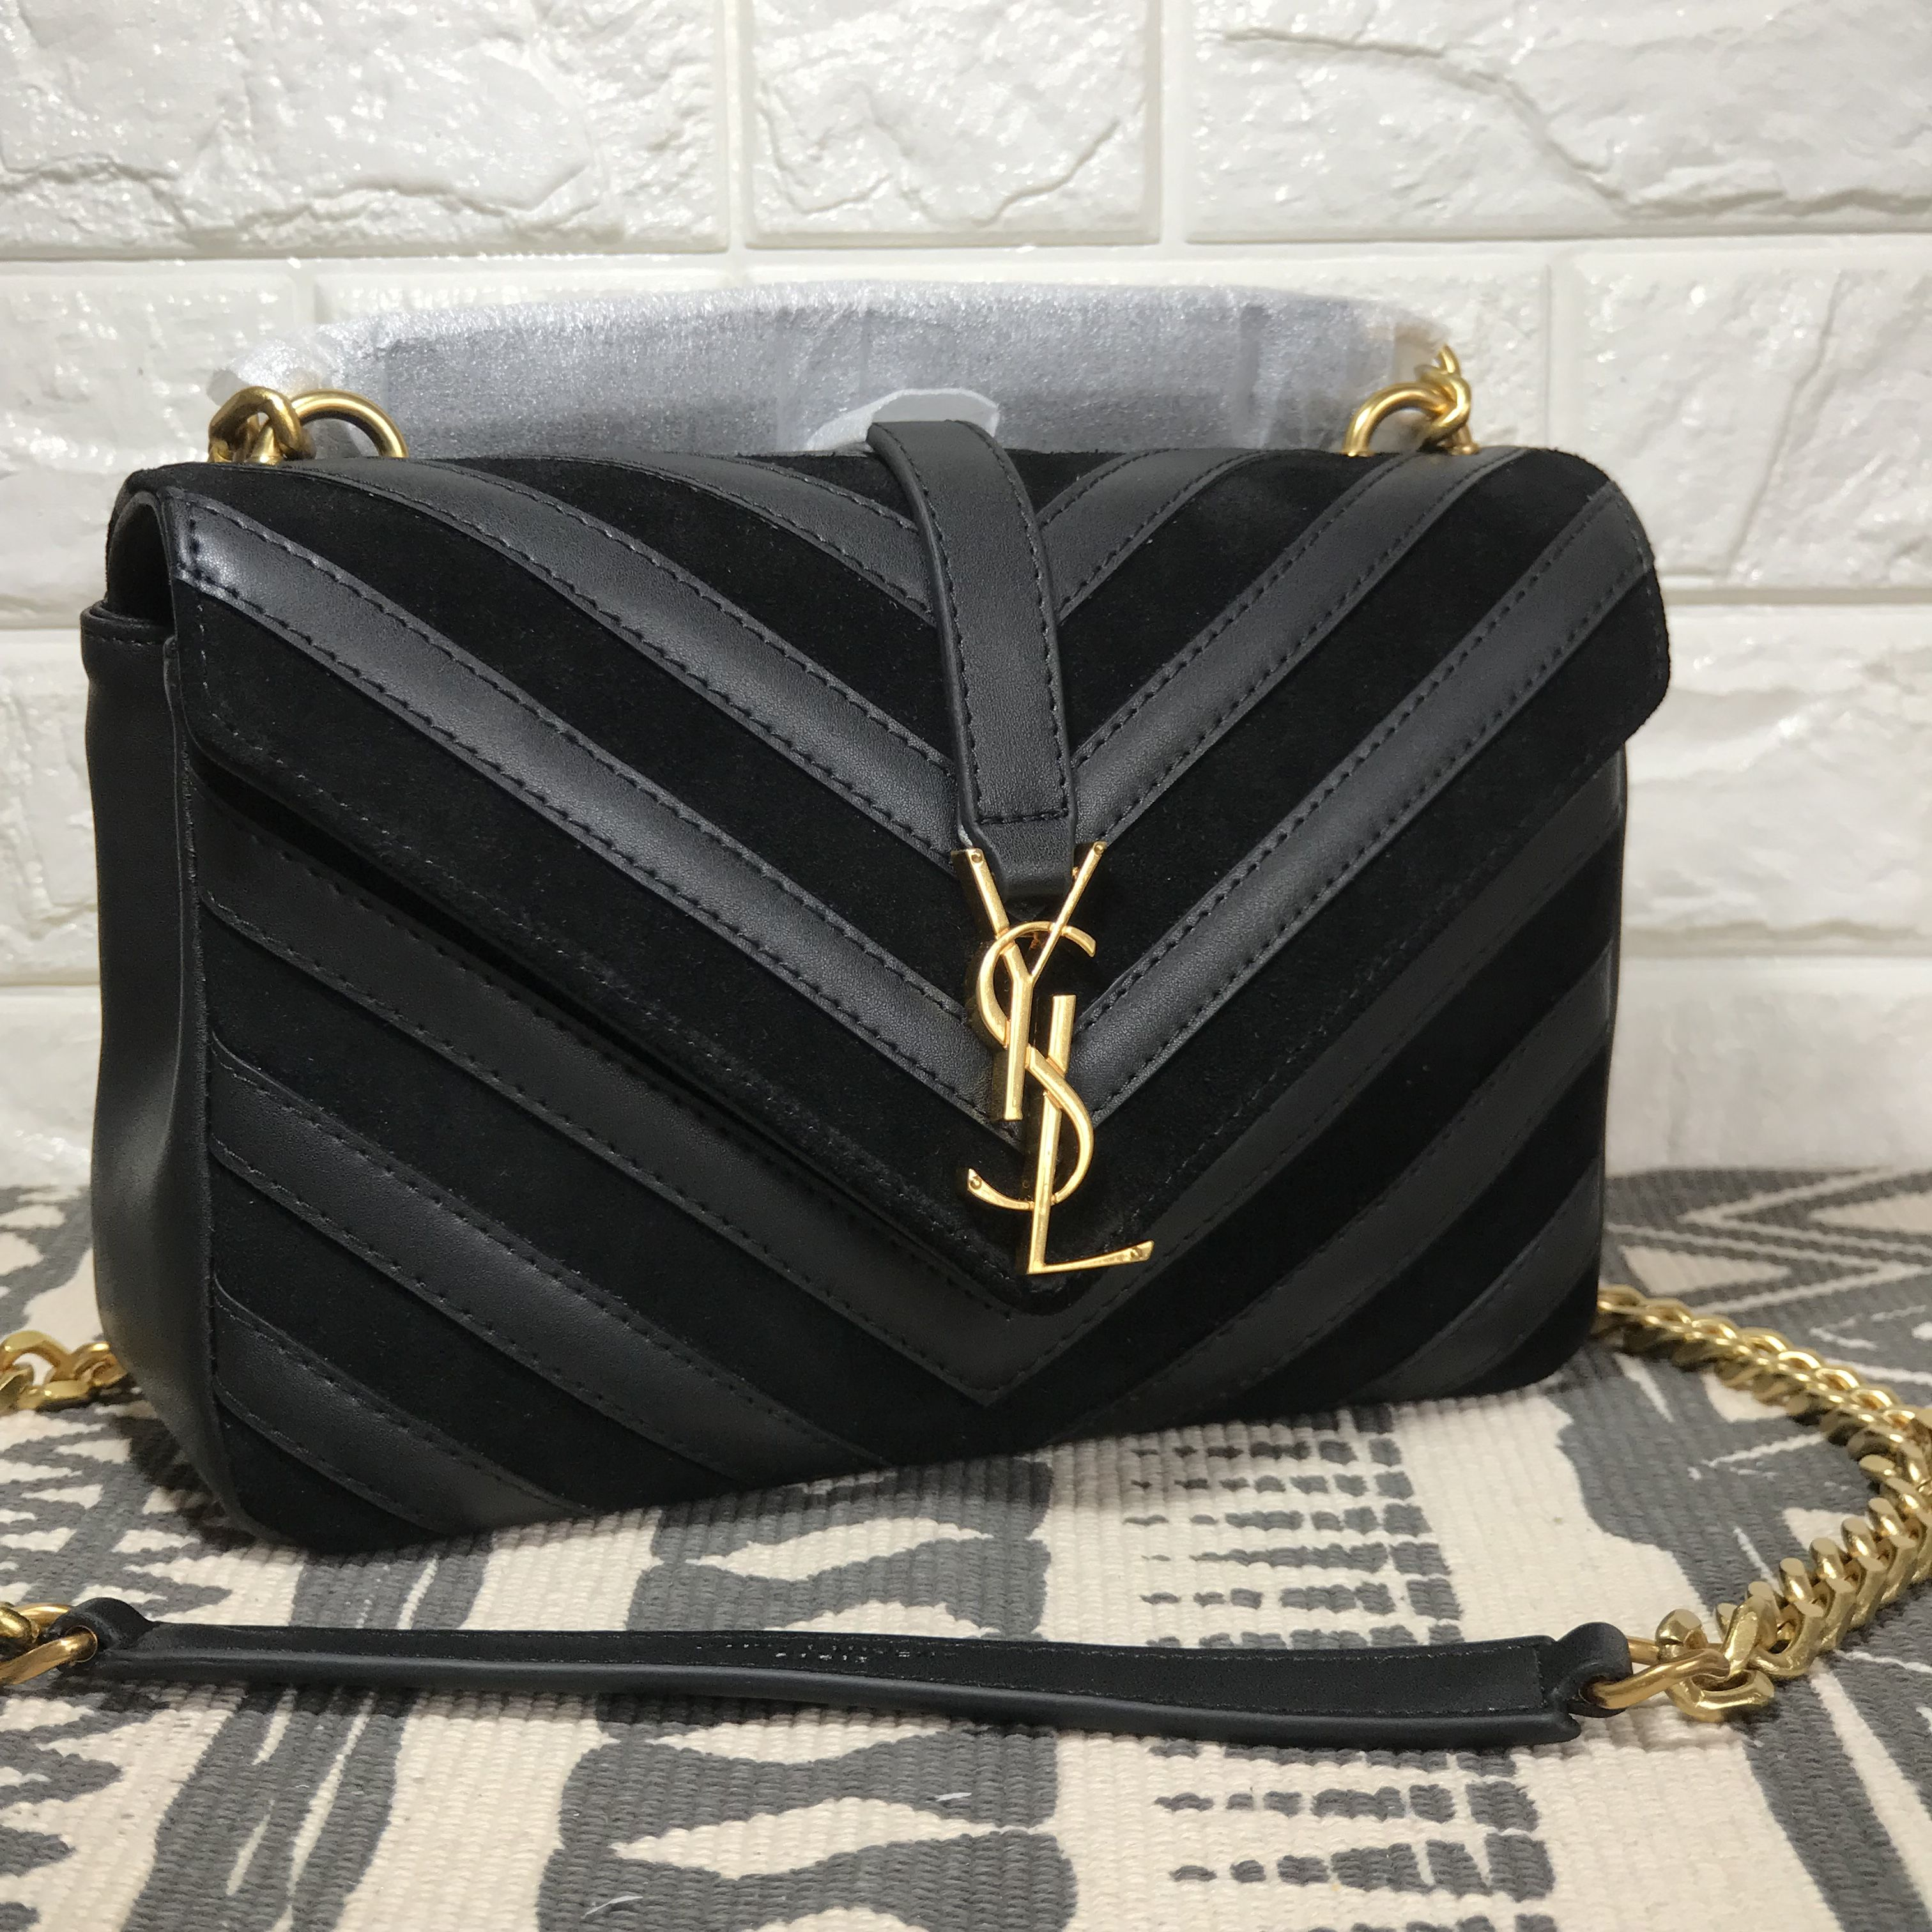 Ysl Bag Laurent Woman Suede Saint Pattern Leather V College kw0PnO